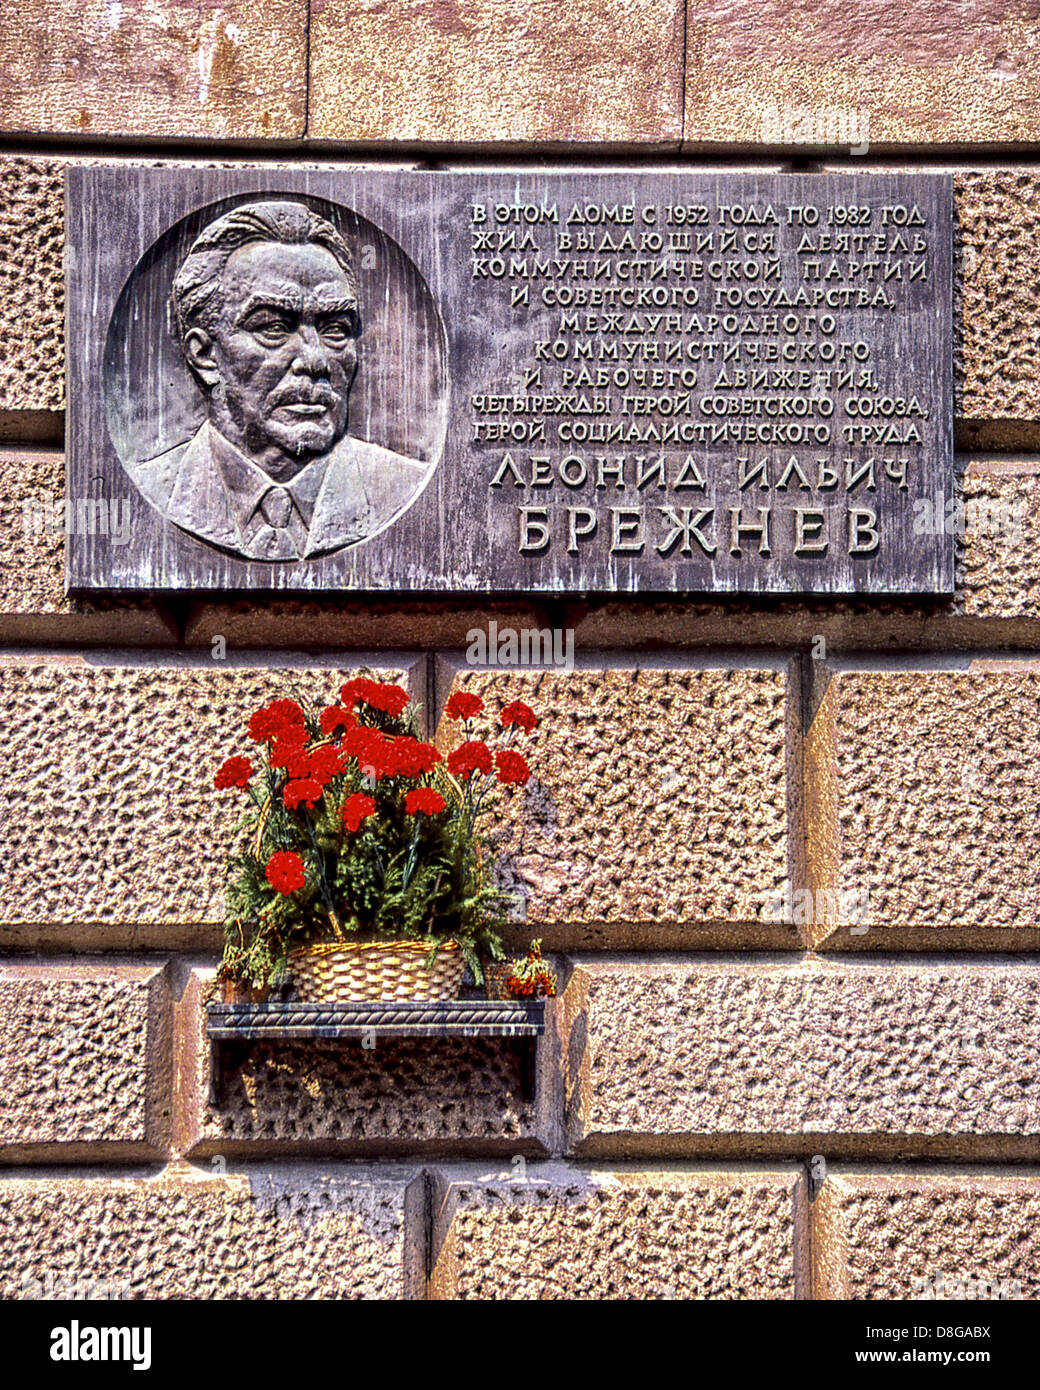 May 1, 1987 - Moscow, RU - A commemorative plaque, and a shelf with flowers, honoring Soviet Leader Leonid Brezhnev,Stock Photo